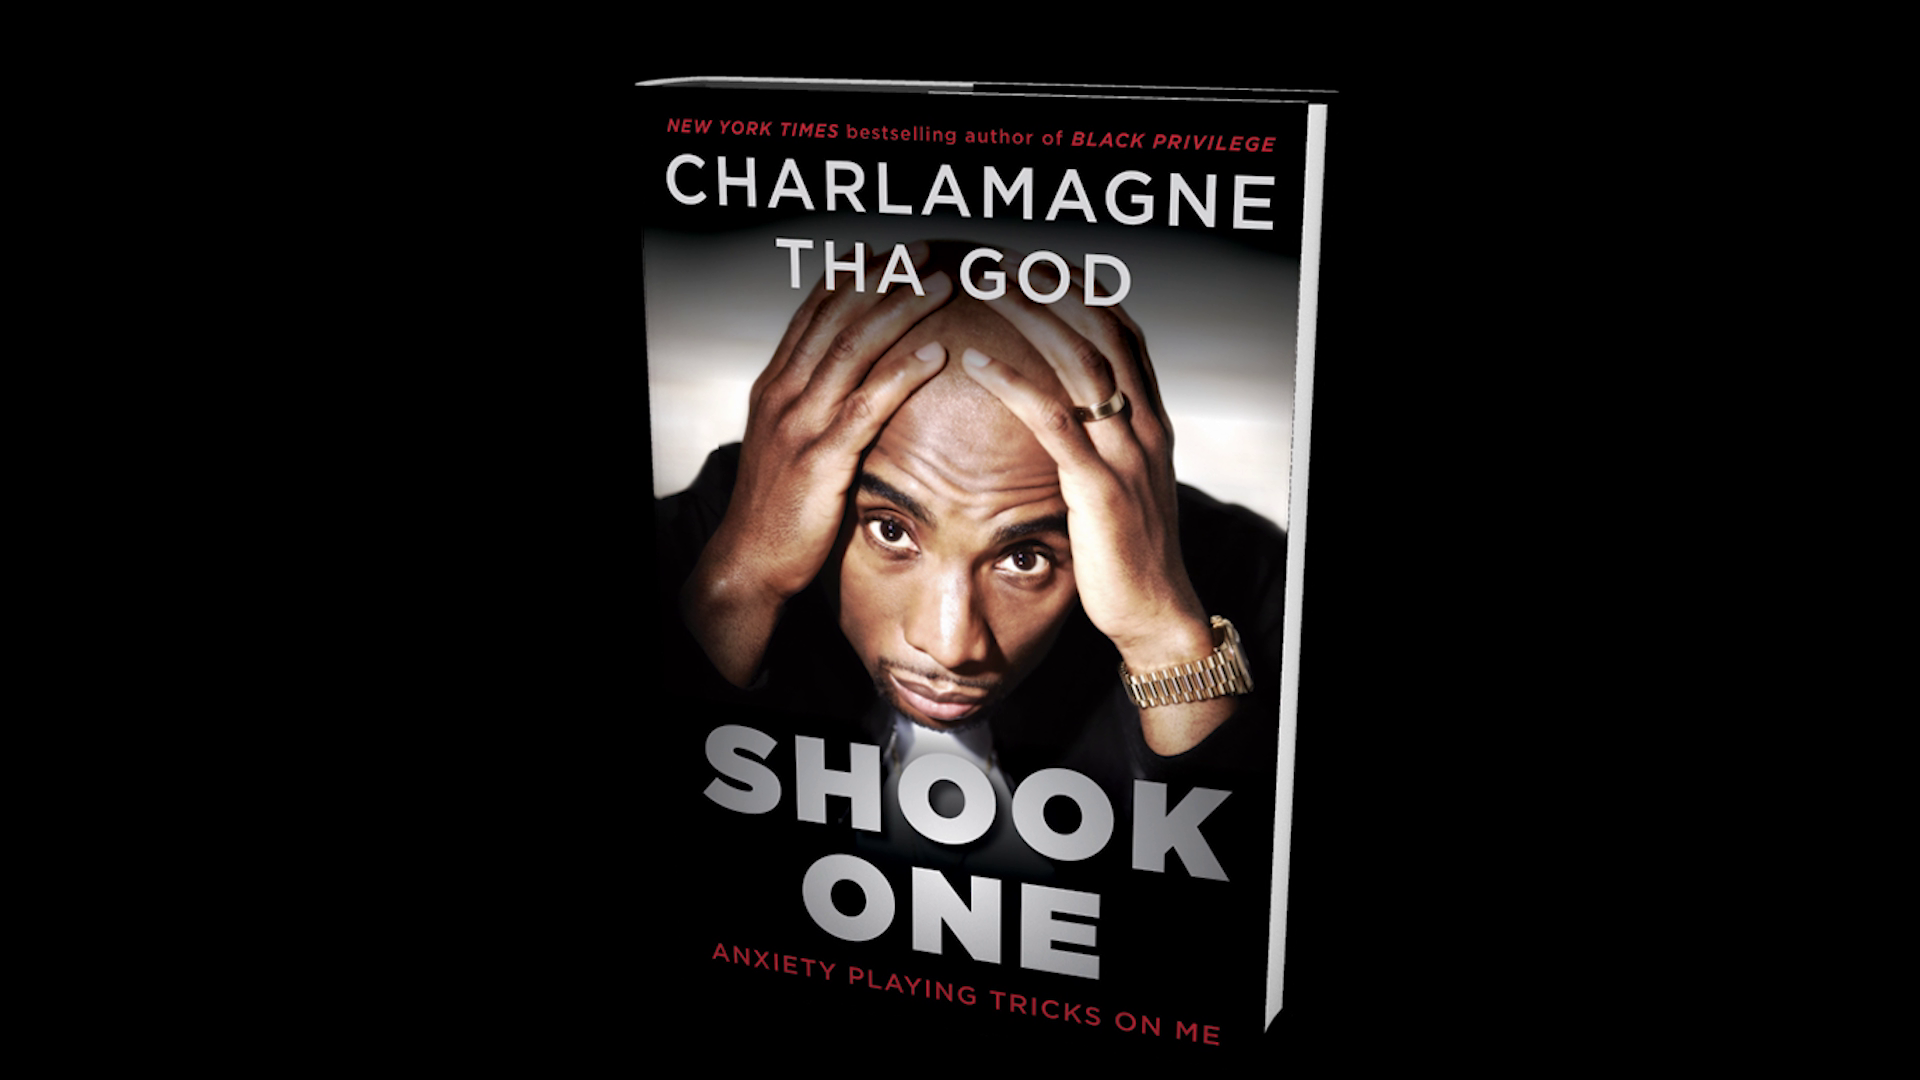 From New York Times Bestselling Author Charlamagne Tha God...SHOOK ONE